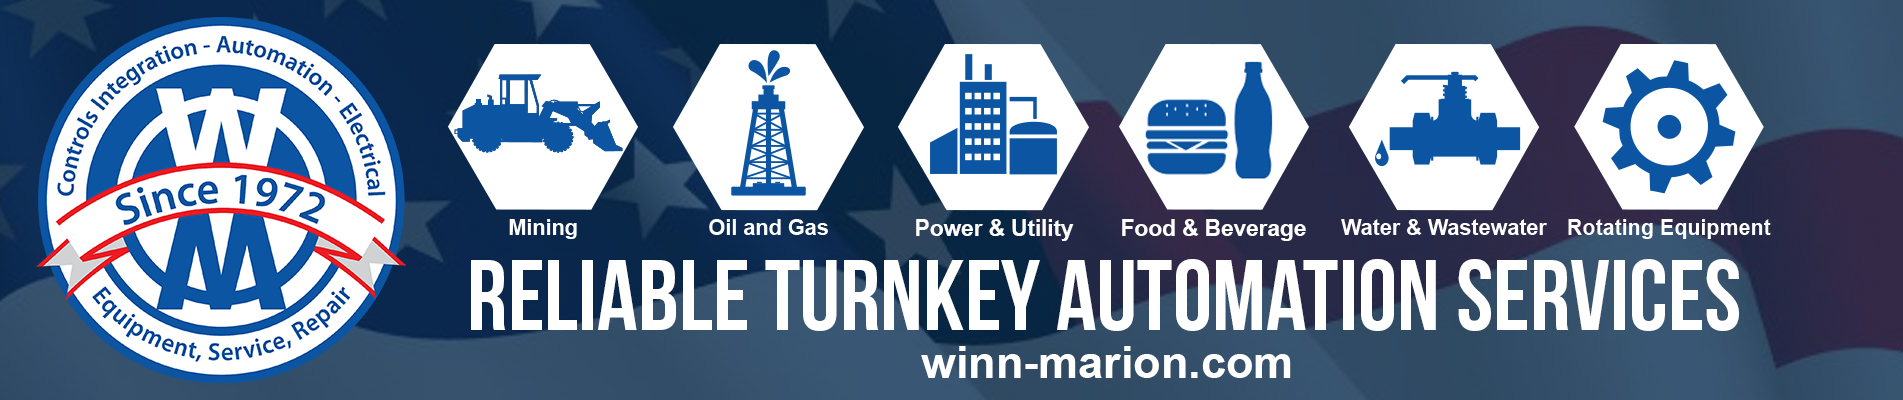 Turnkey Automation